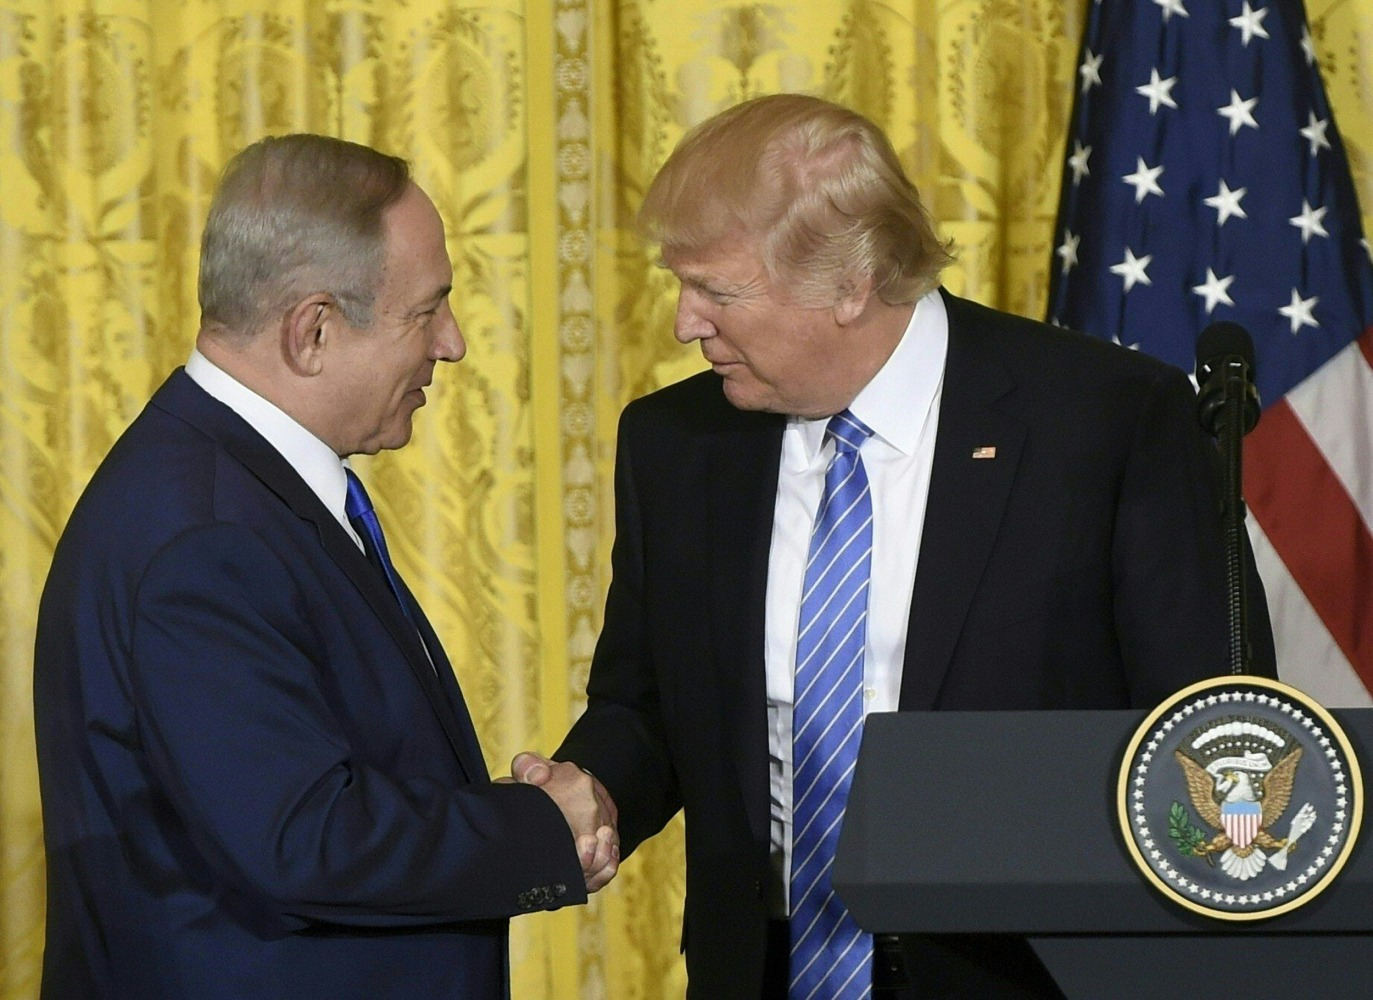 Trump has reportedly punted on moving the Israeli embassy